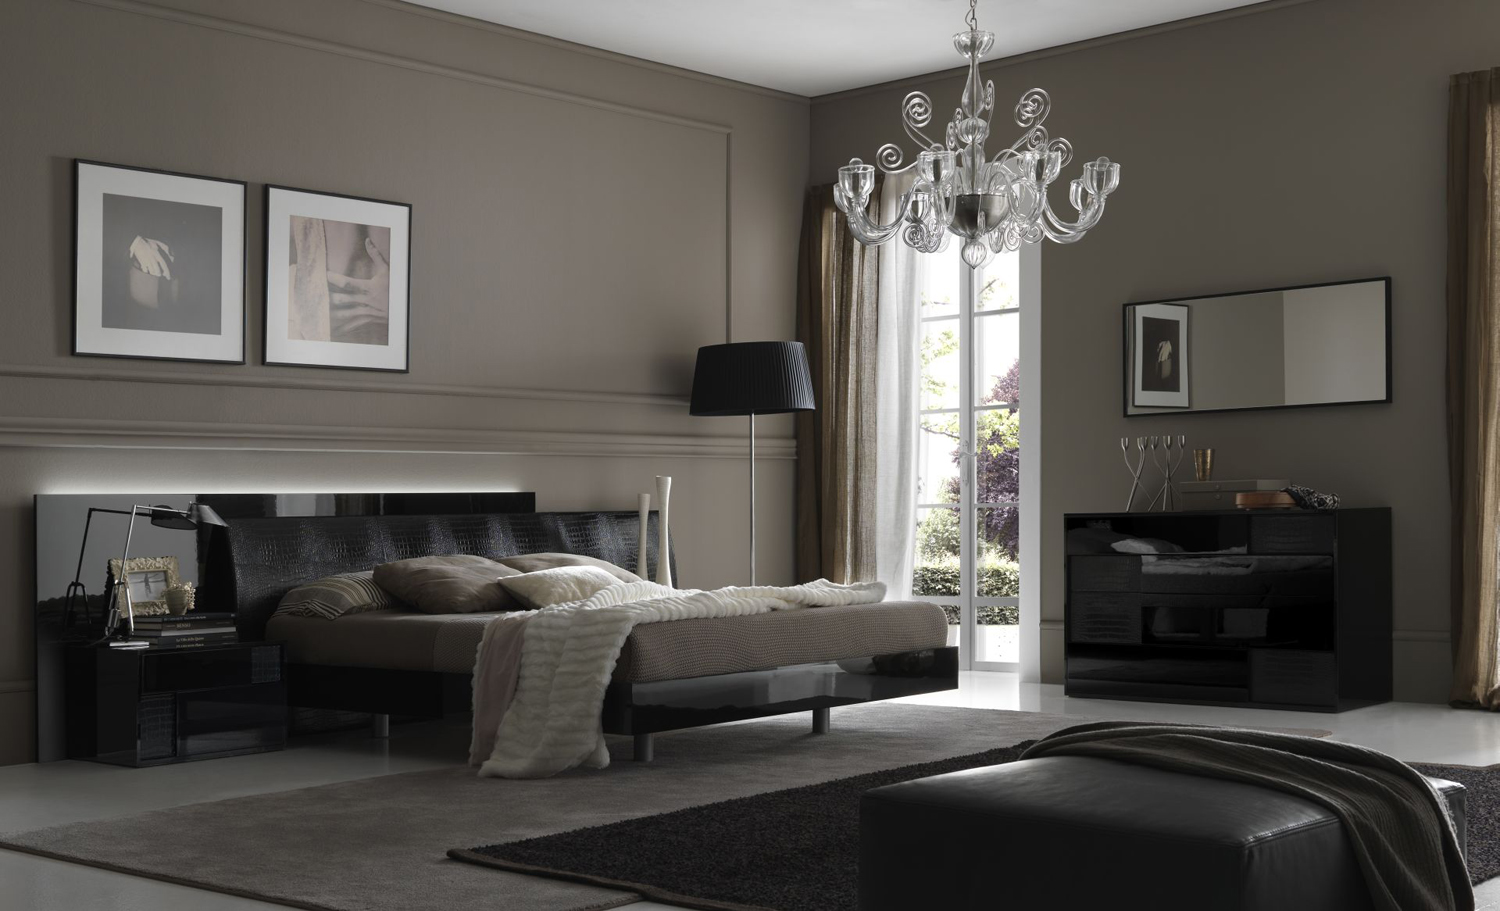 bedroom design ideas images. grey bedroom design ideas images